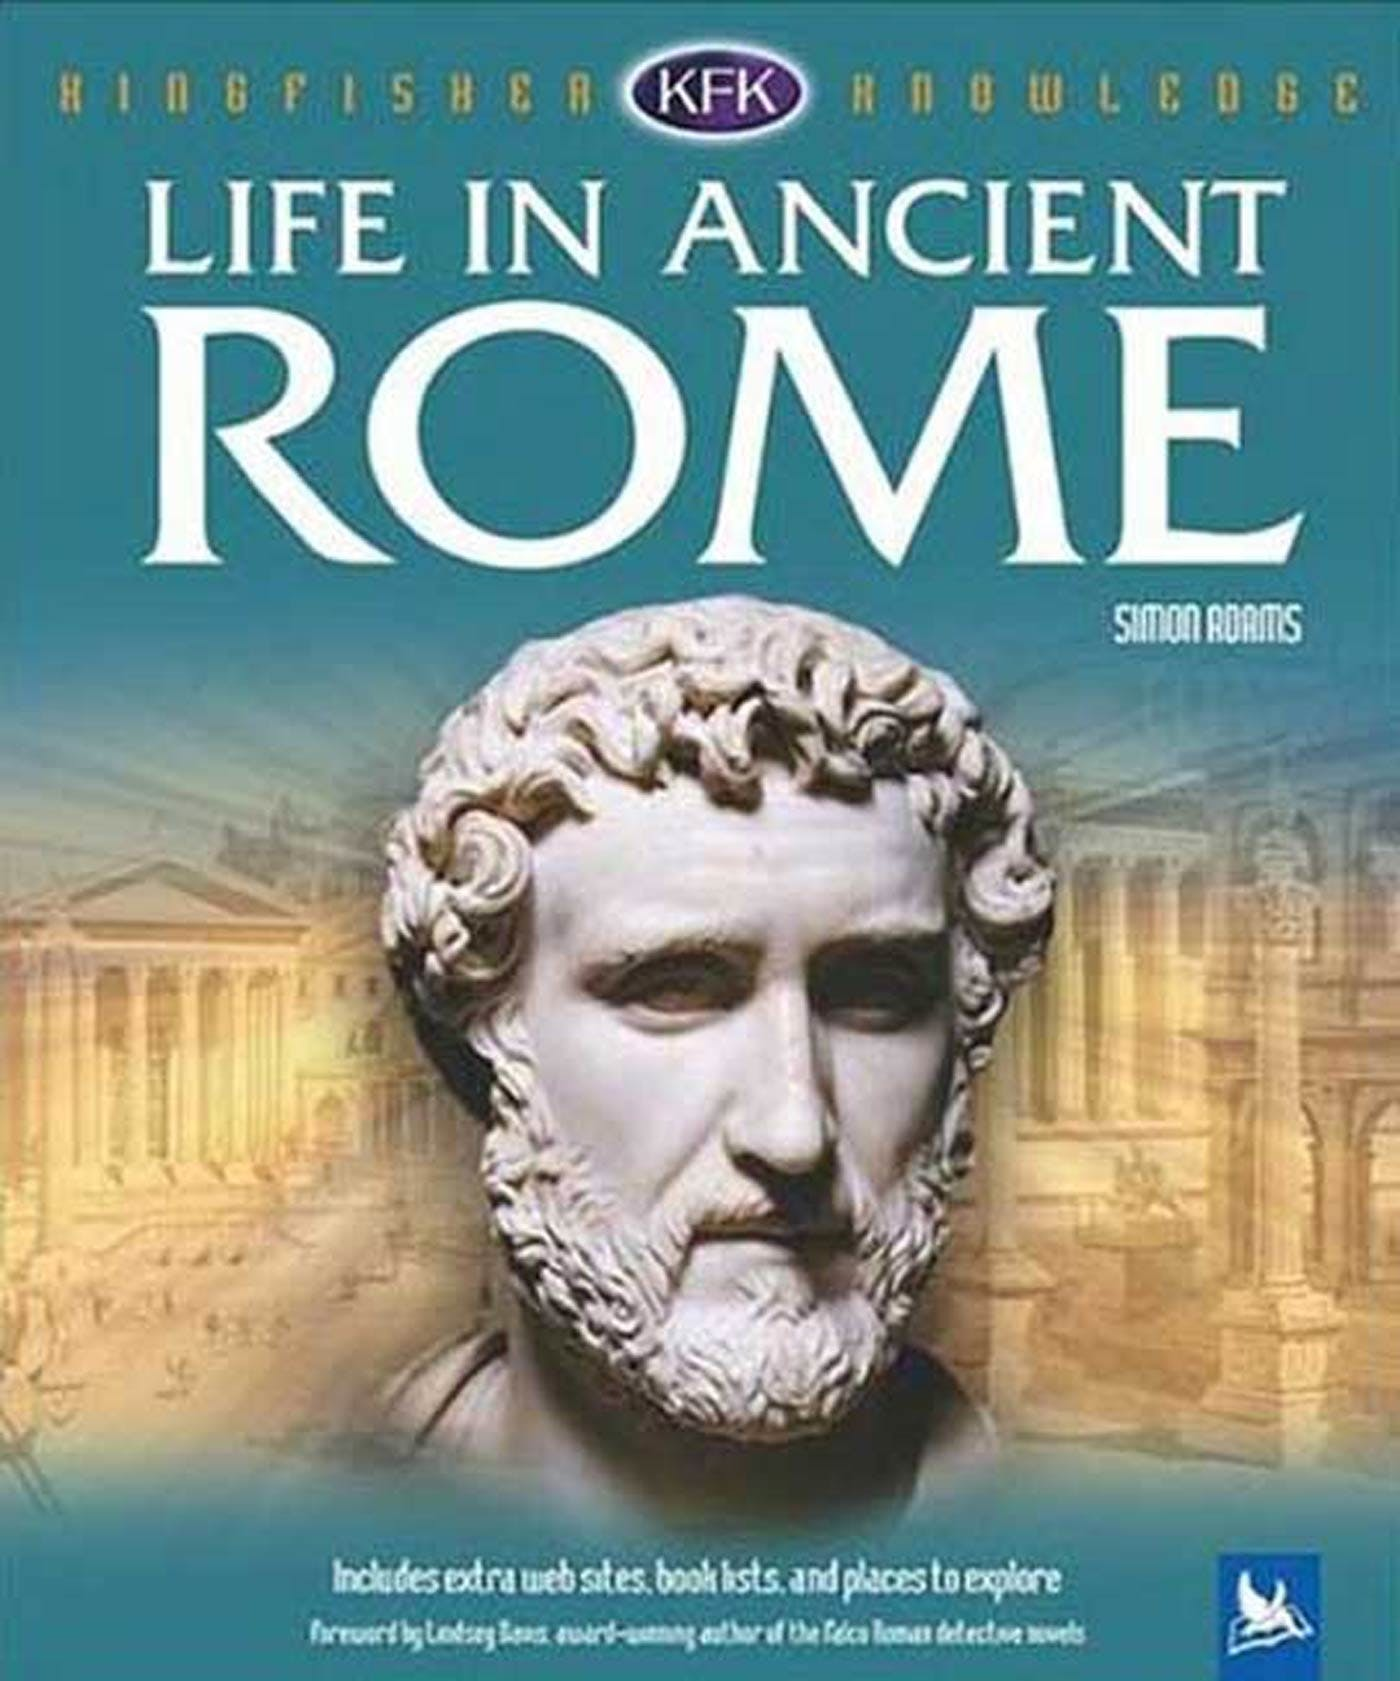 Image of Life in Ancient Rome